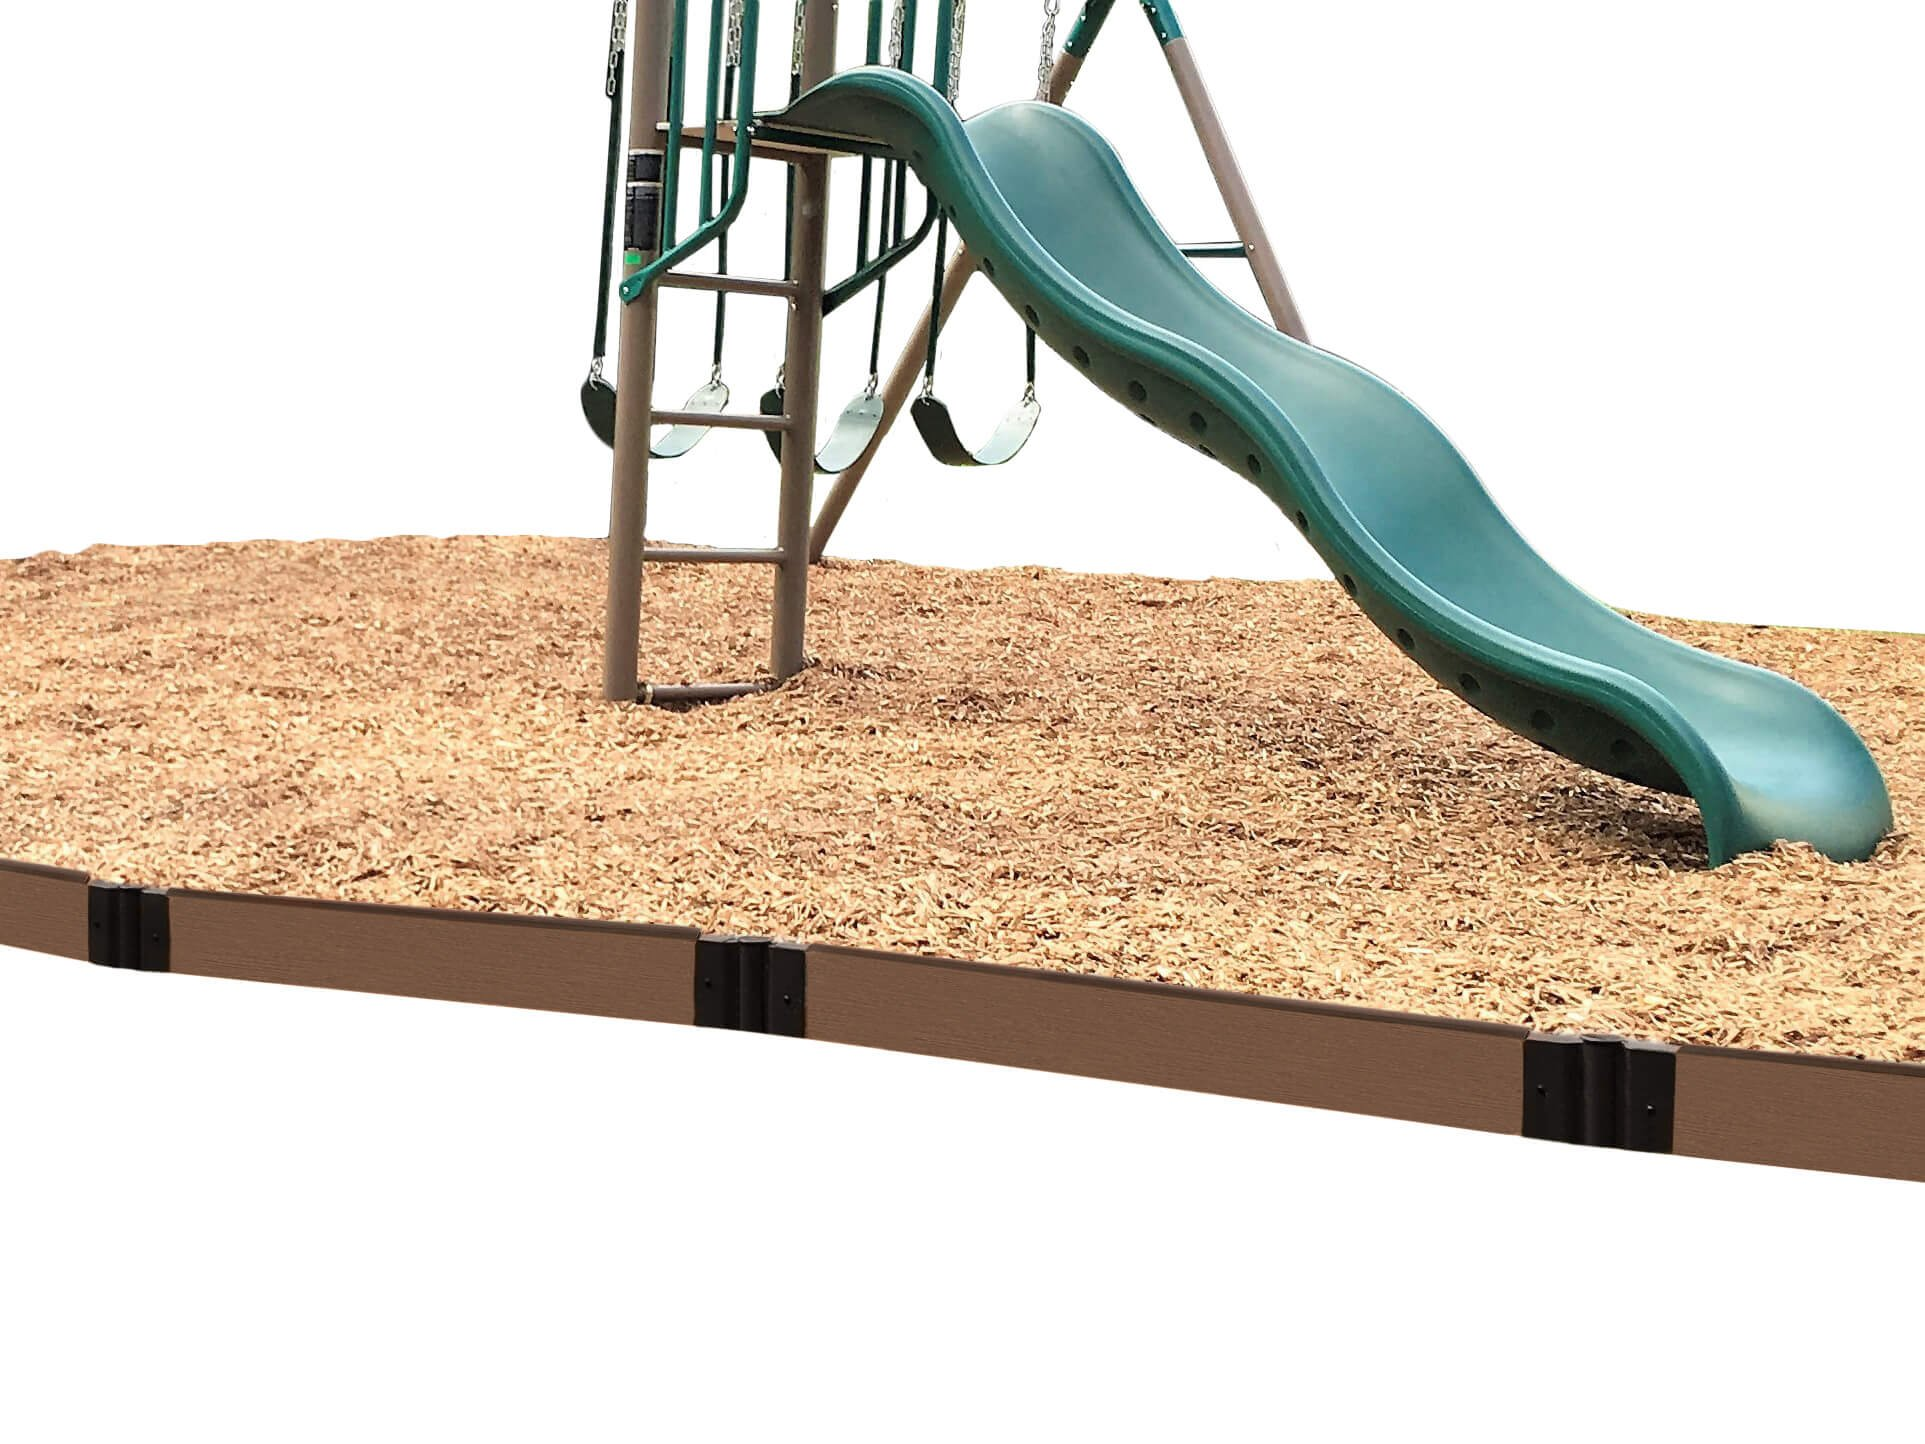 Frame It All 300001444 Uptown Straight Playground Border 16' -1'' Profile, Brown